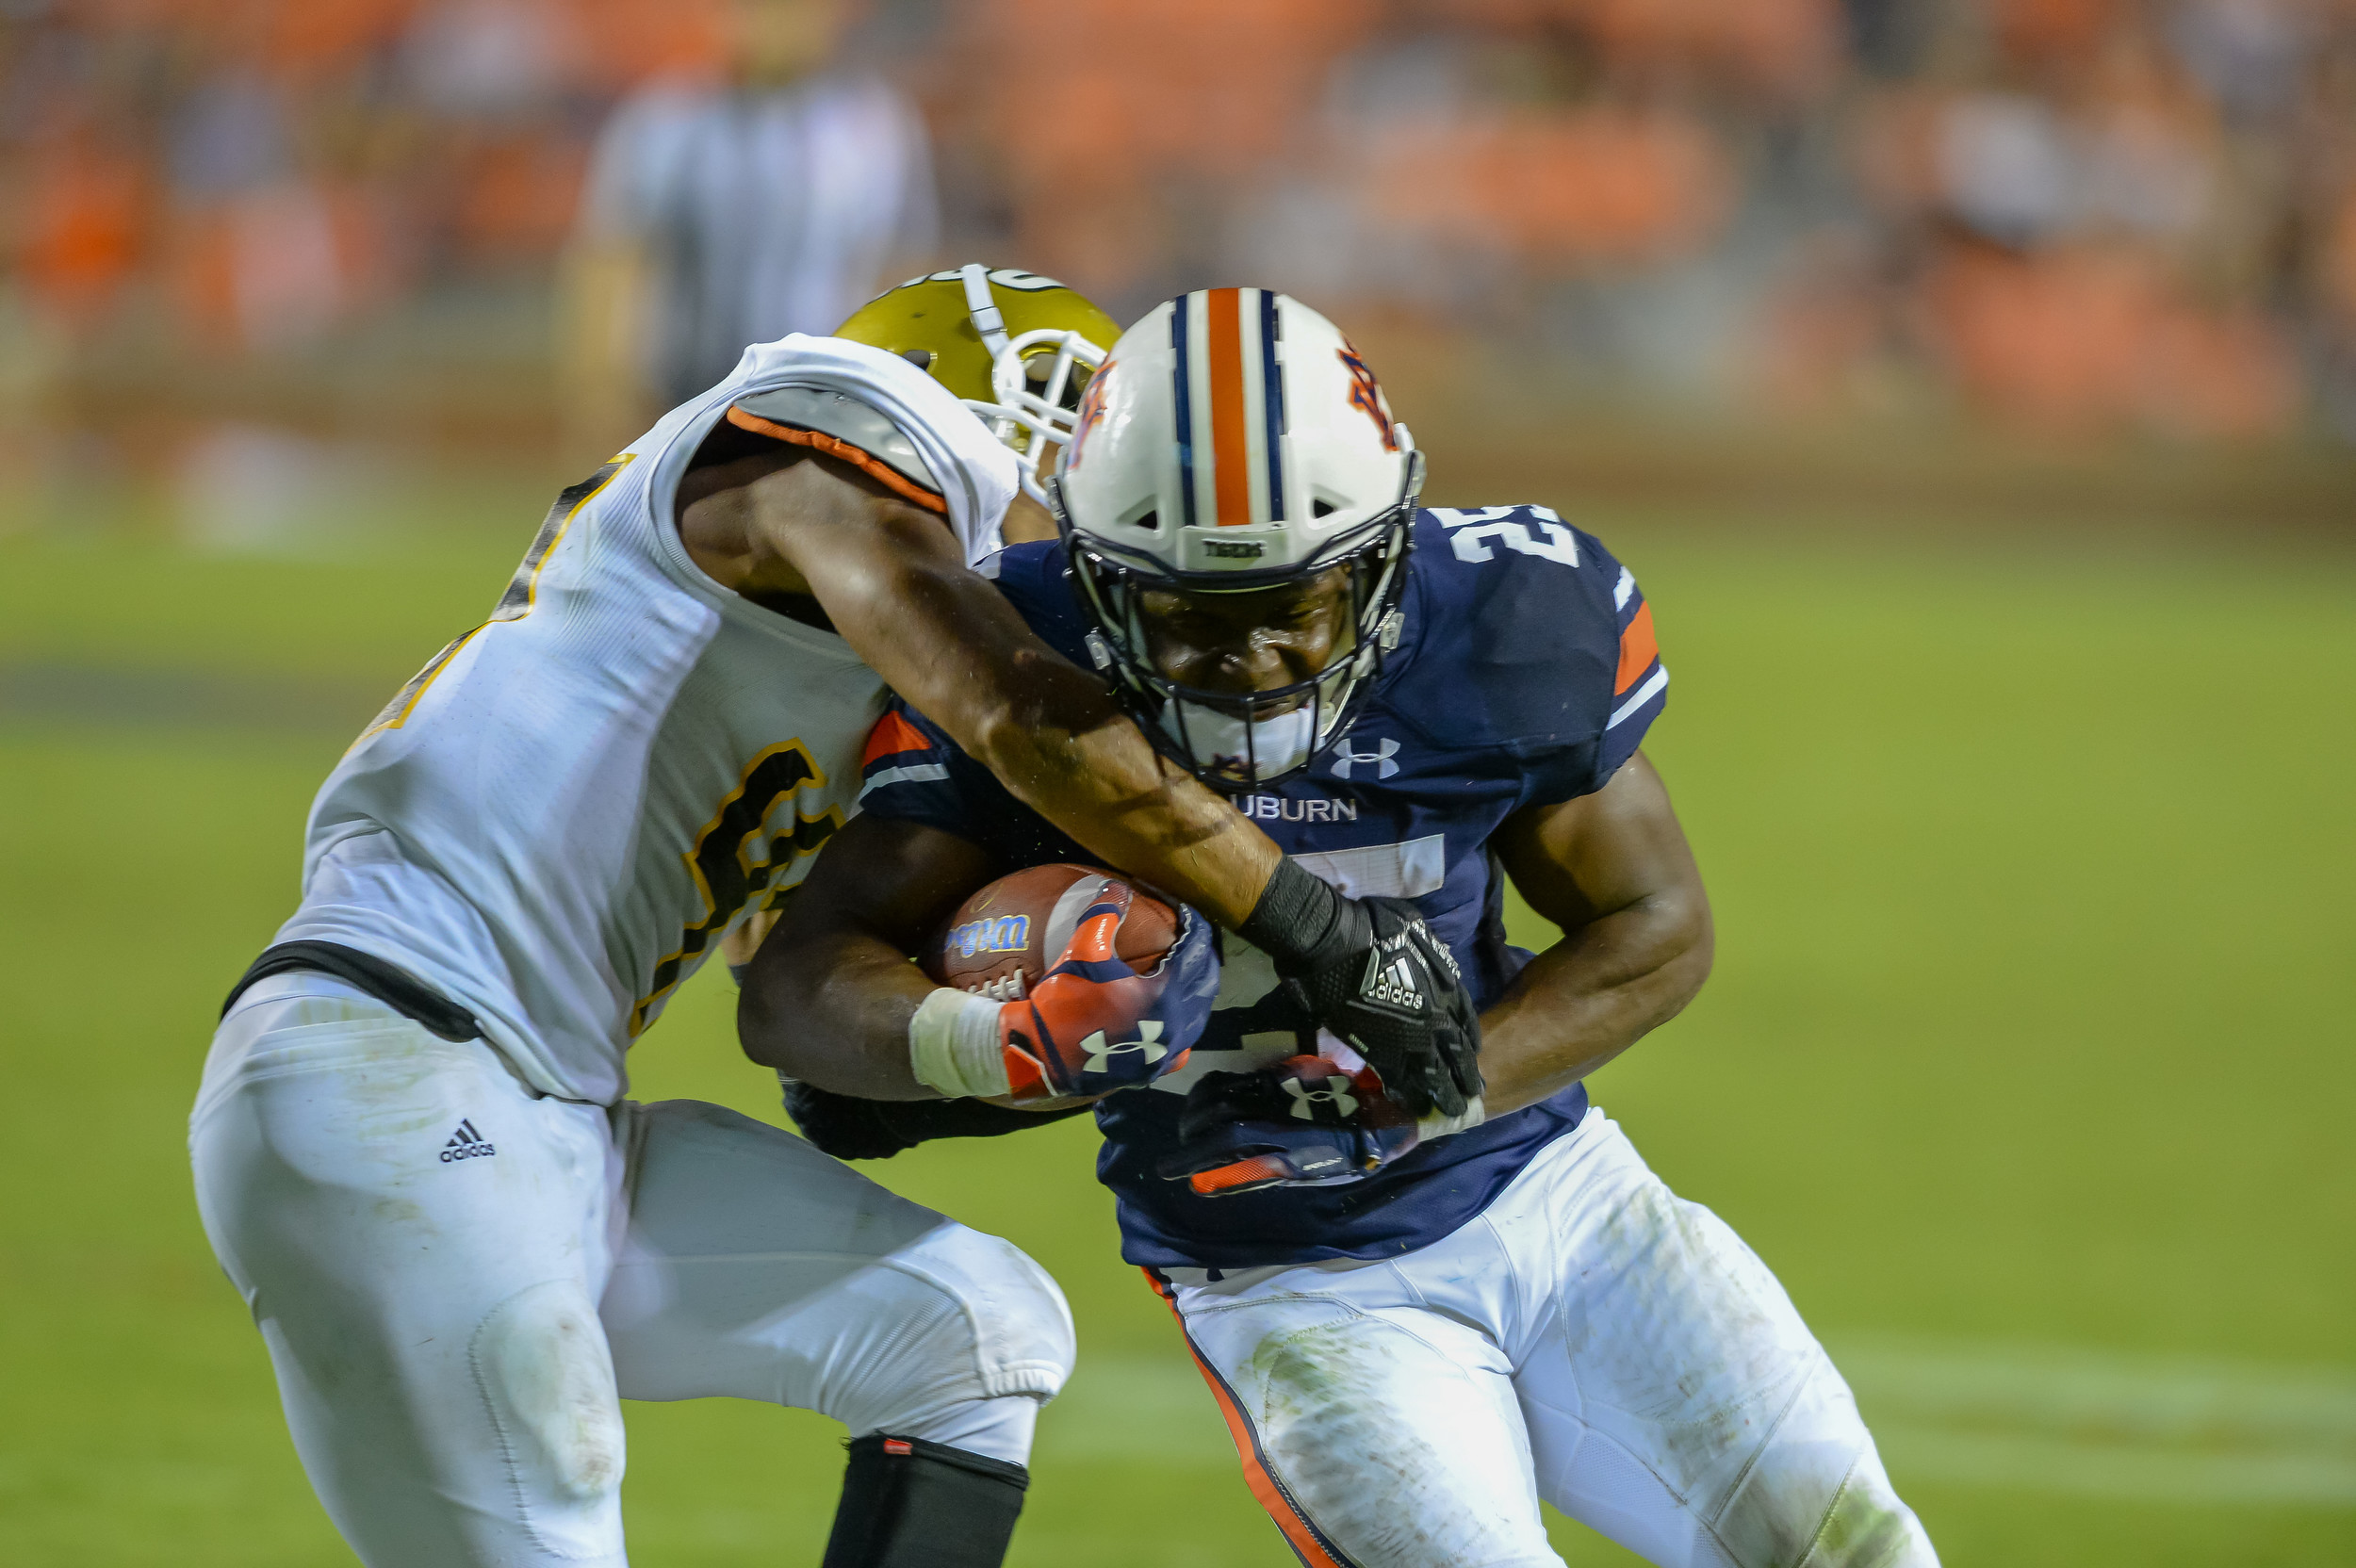 Auburn Tigers running back Shaun Shivers (25) is tackled by Alabama State Hornets defensive back Kurron Ramsey (47) during the second half of Saturday's game, at Jordan Hare Stadium in Auburn Atlanta. (Contributed by Jeff Johnsey)